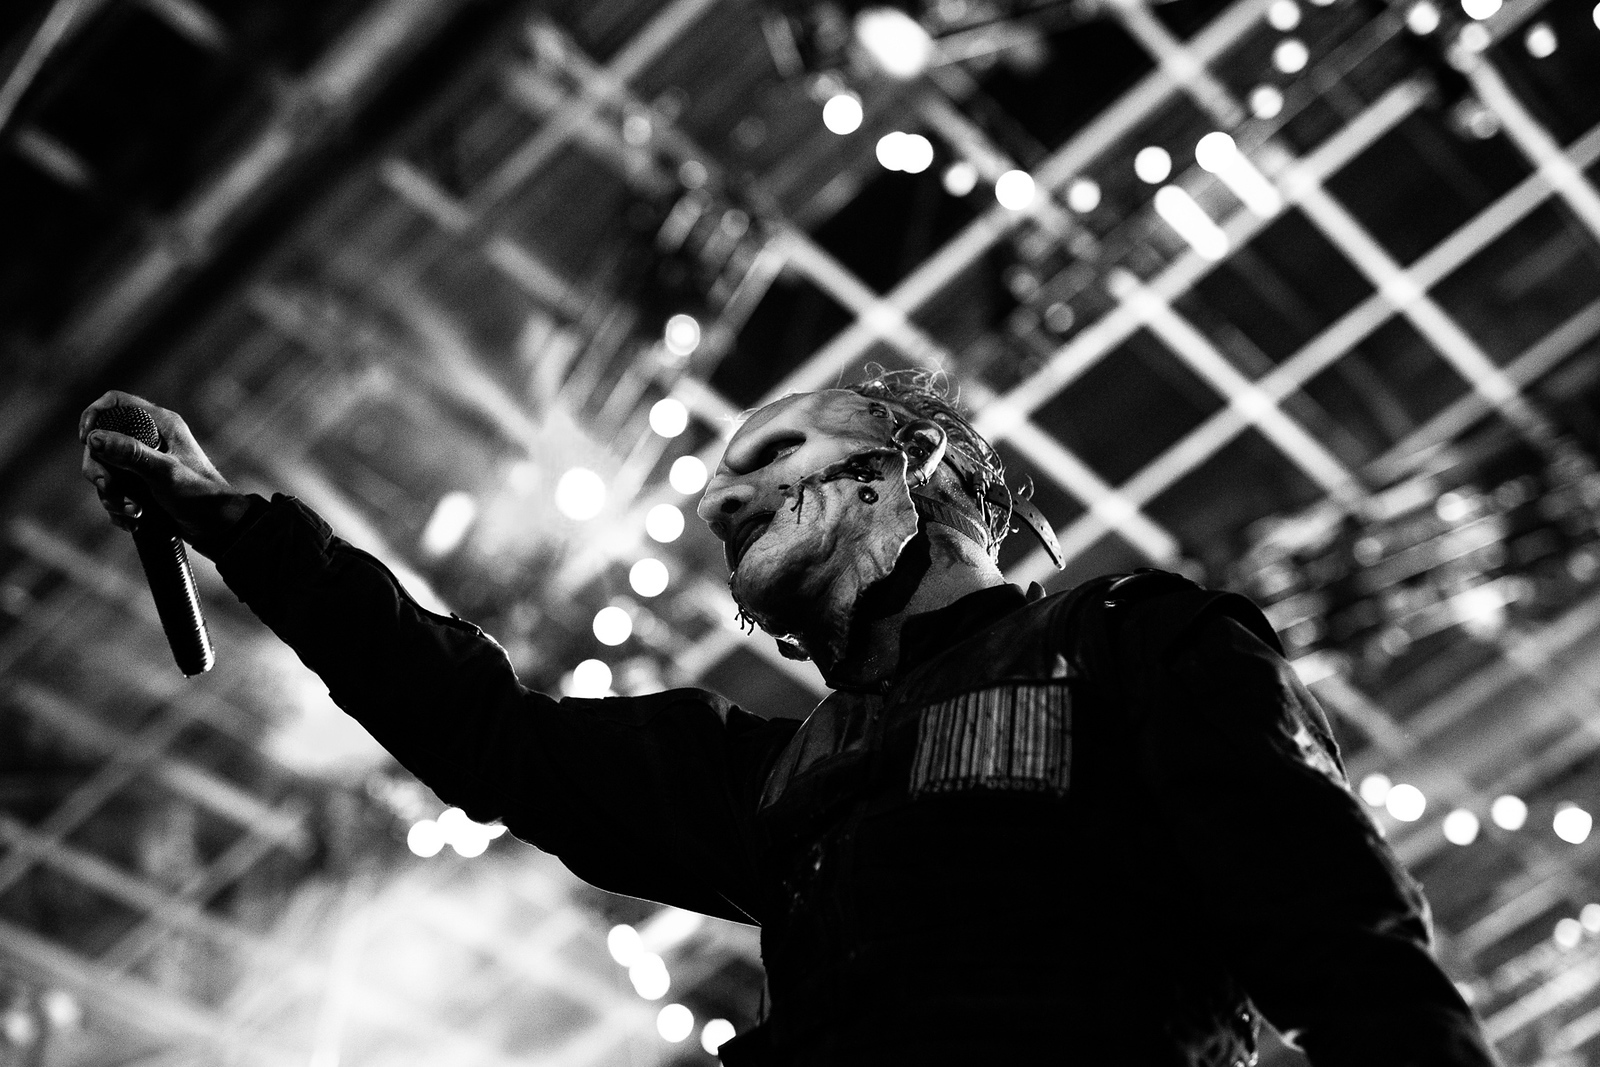 Corey Taylor of Slipknot by Adam Elmakias at Knotfest 2015